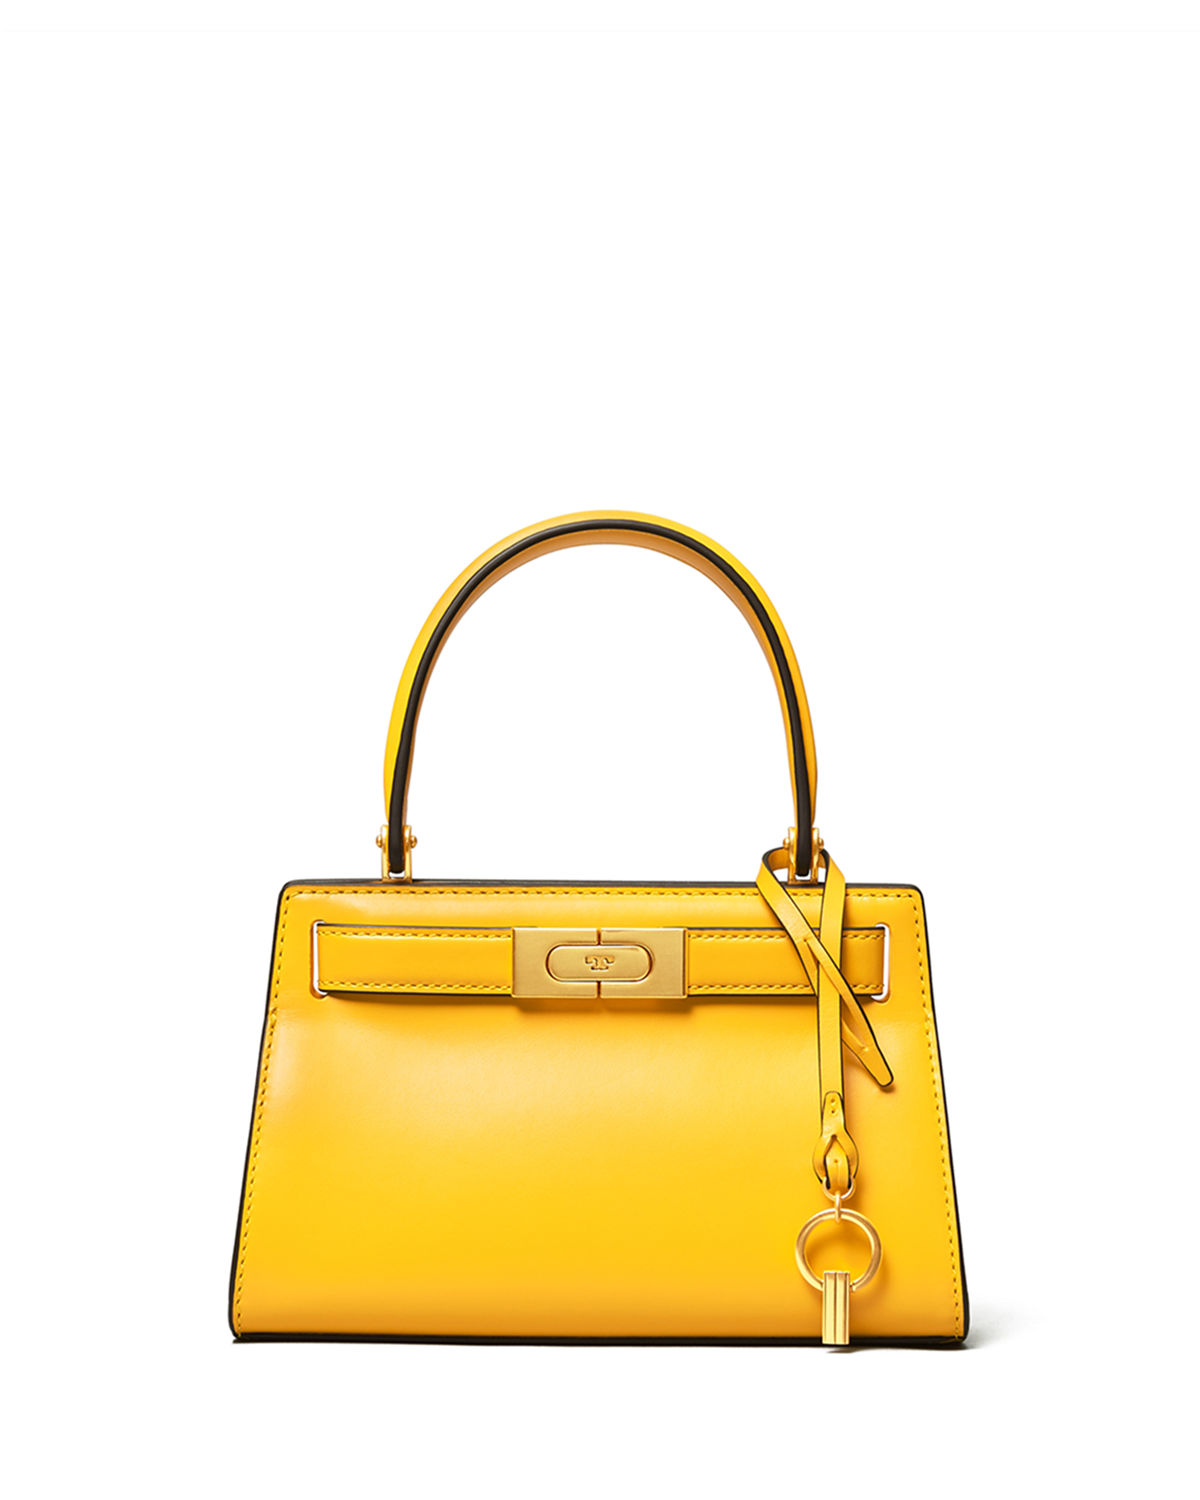 Tory Burch Bags LEE RADZIWILL PETITE LEATHER BAG